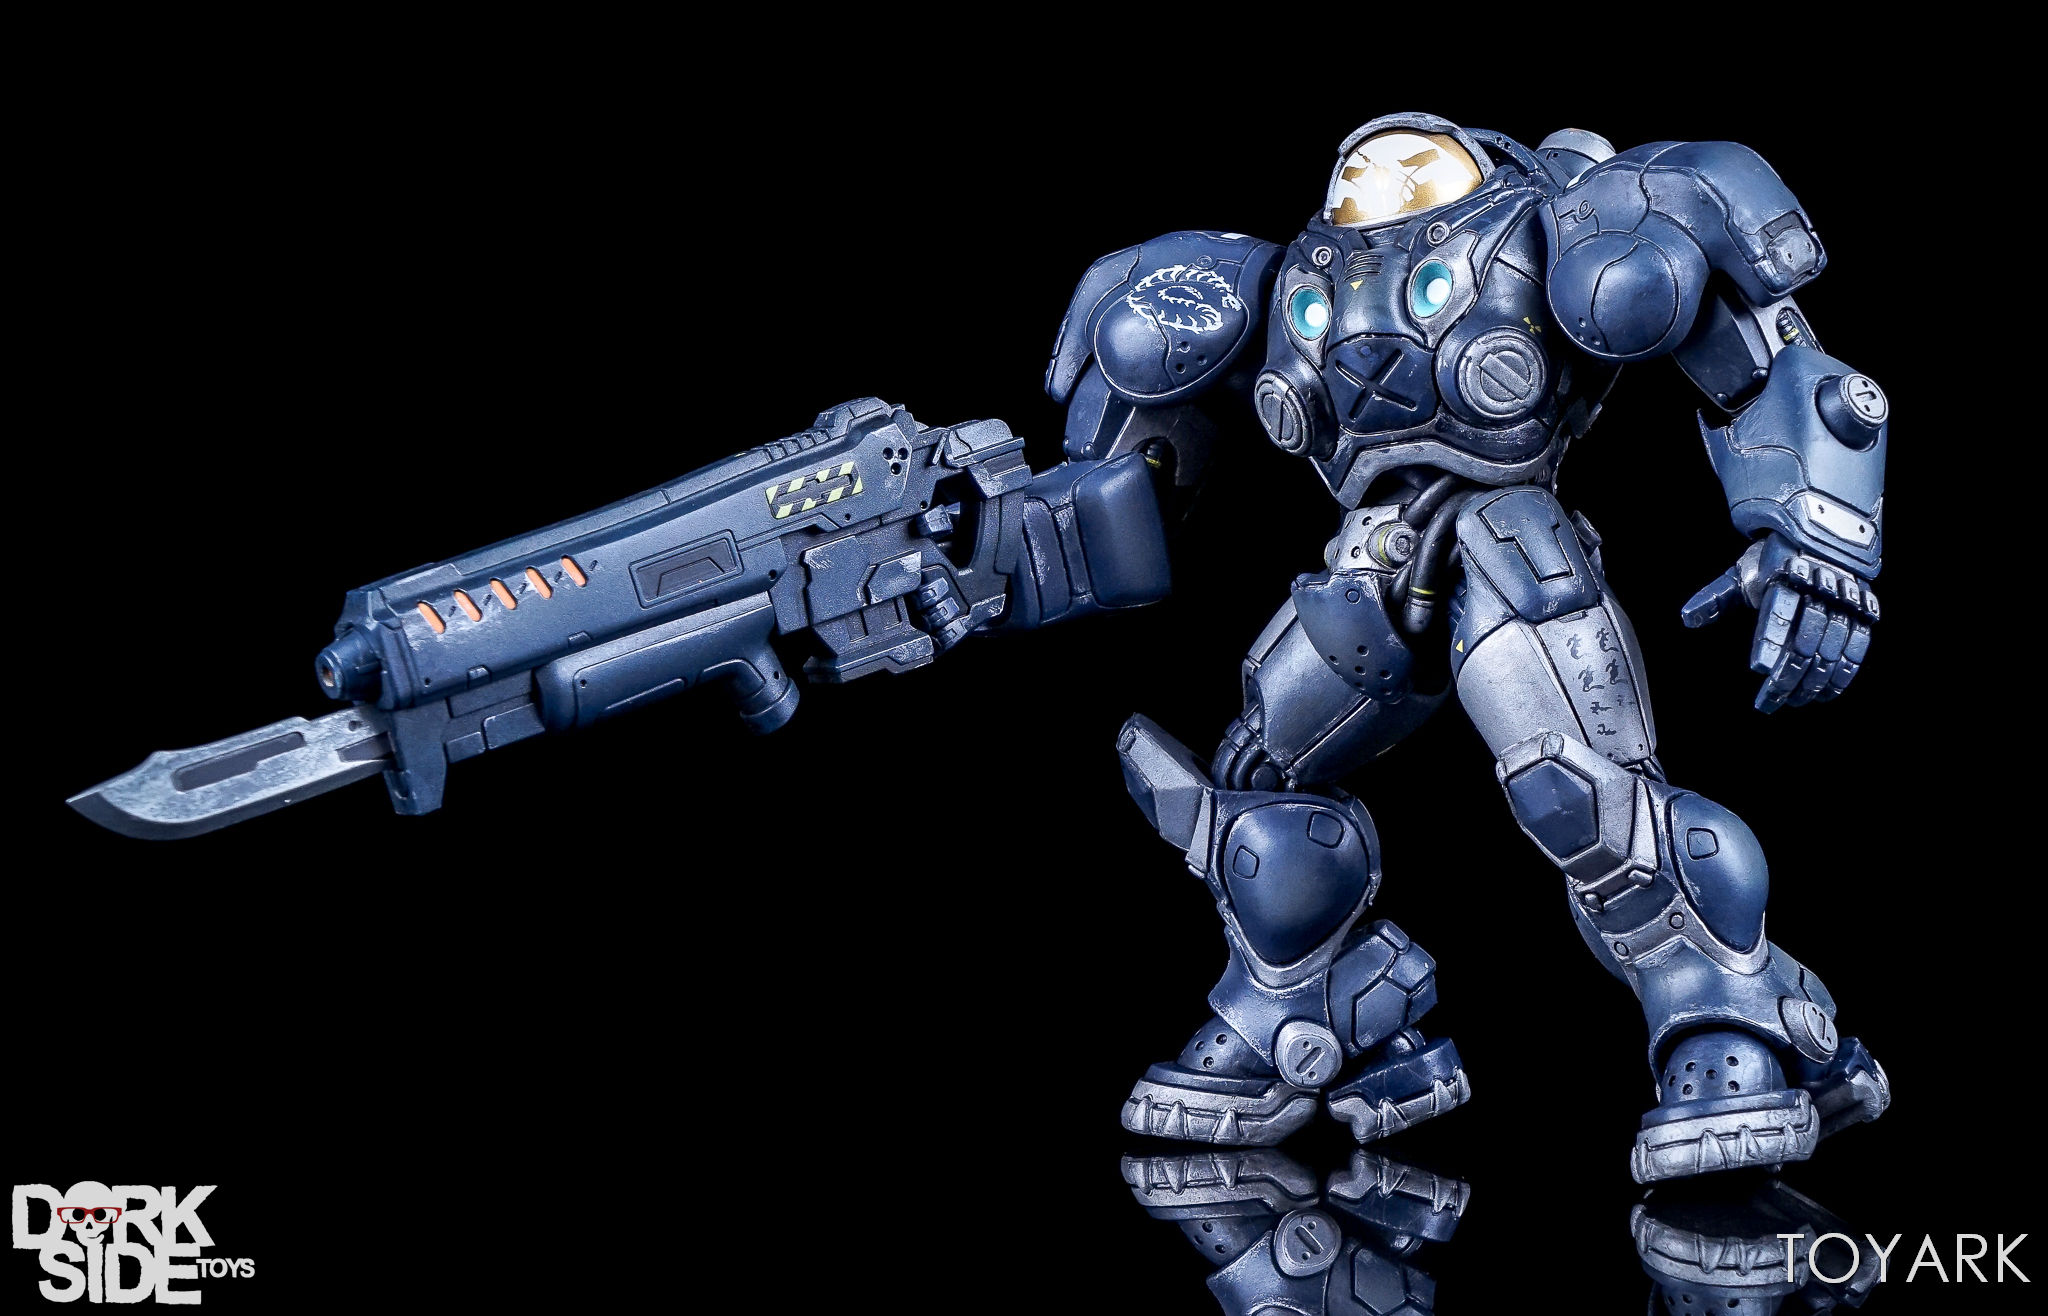 http://news.toyark.com/wp-content/uploads/sites/4/2017/08/NECA-Heroes-of-the-Storm-Raynor-003.jpg